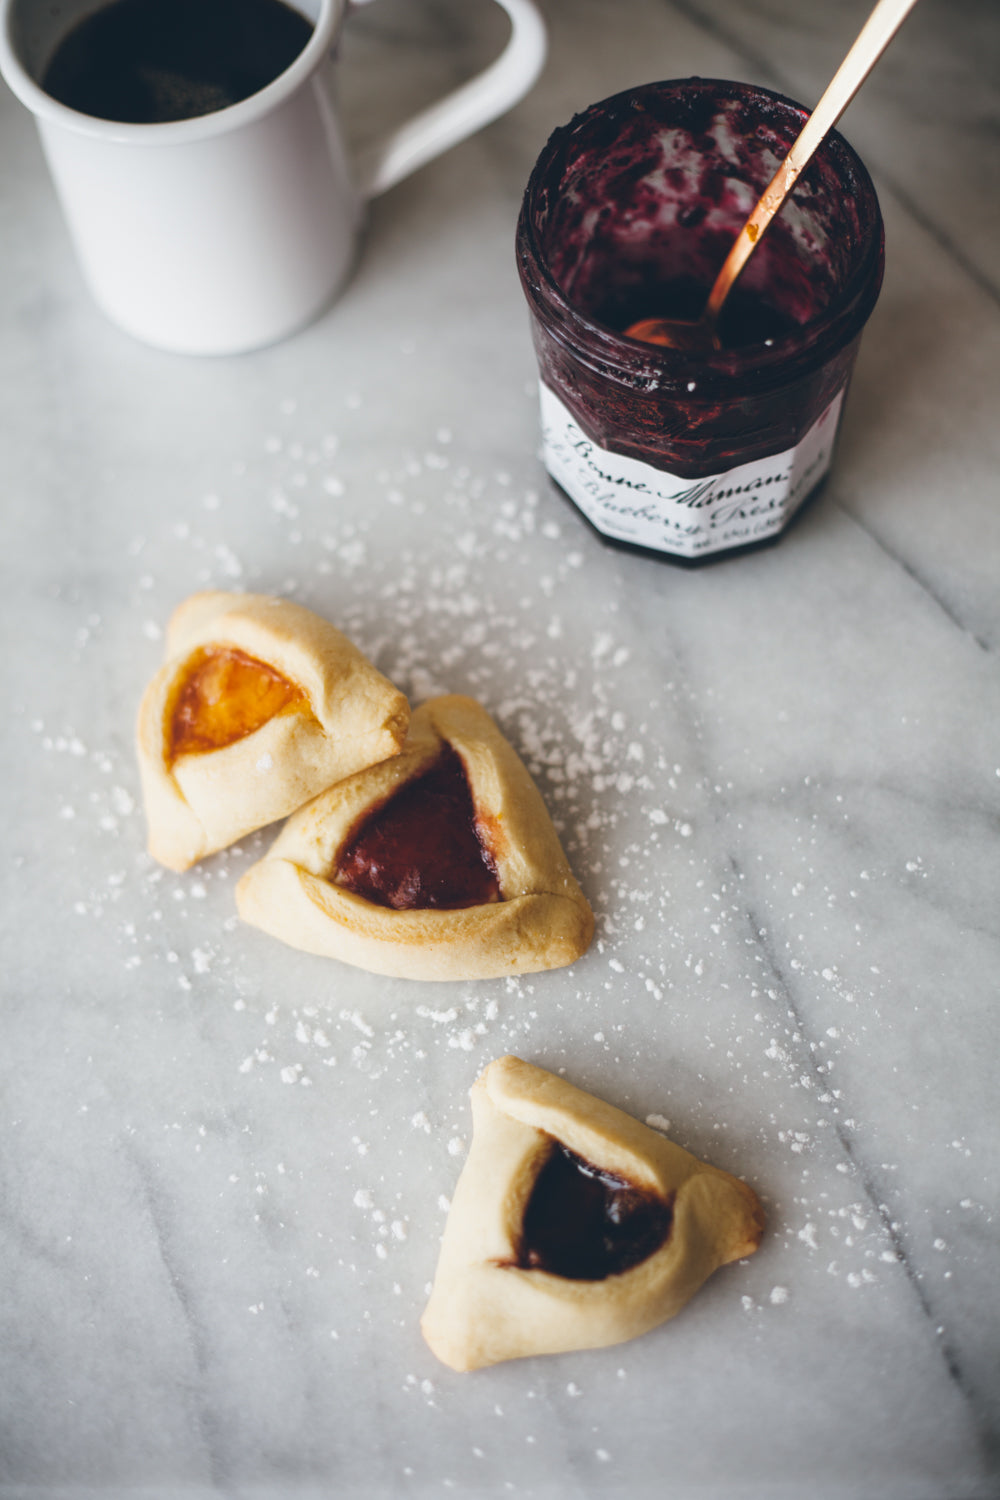 halva and jam hamantaschen from molly yeh